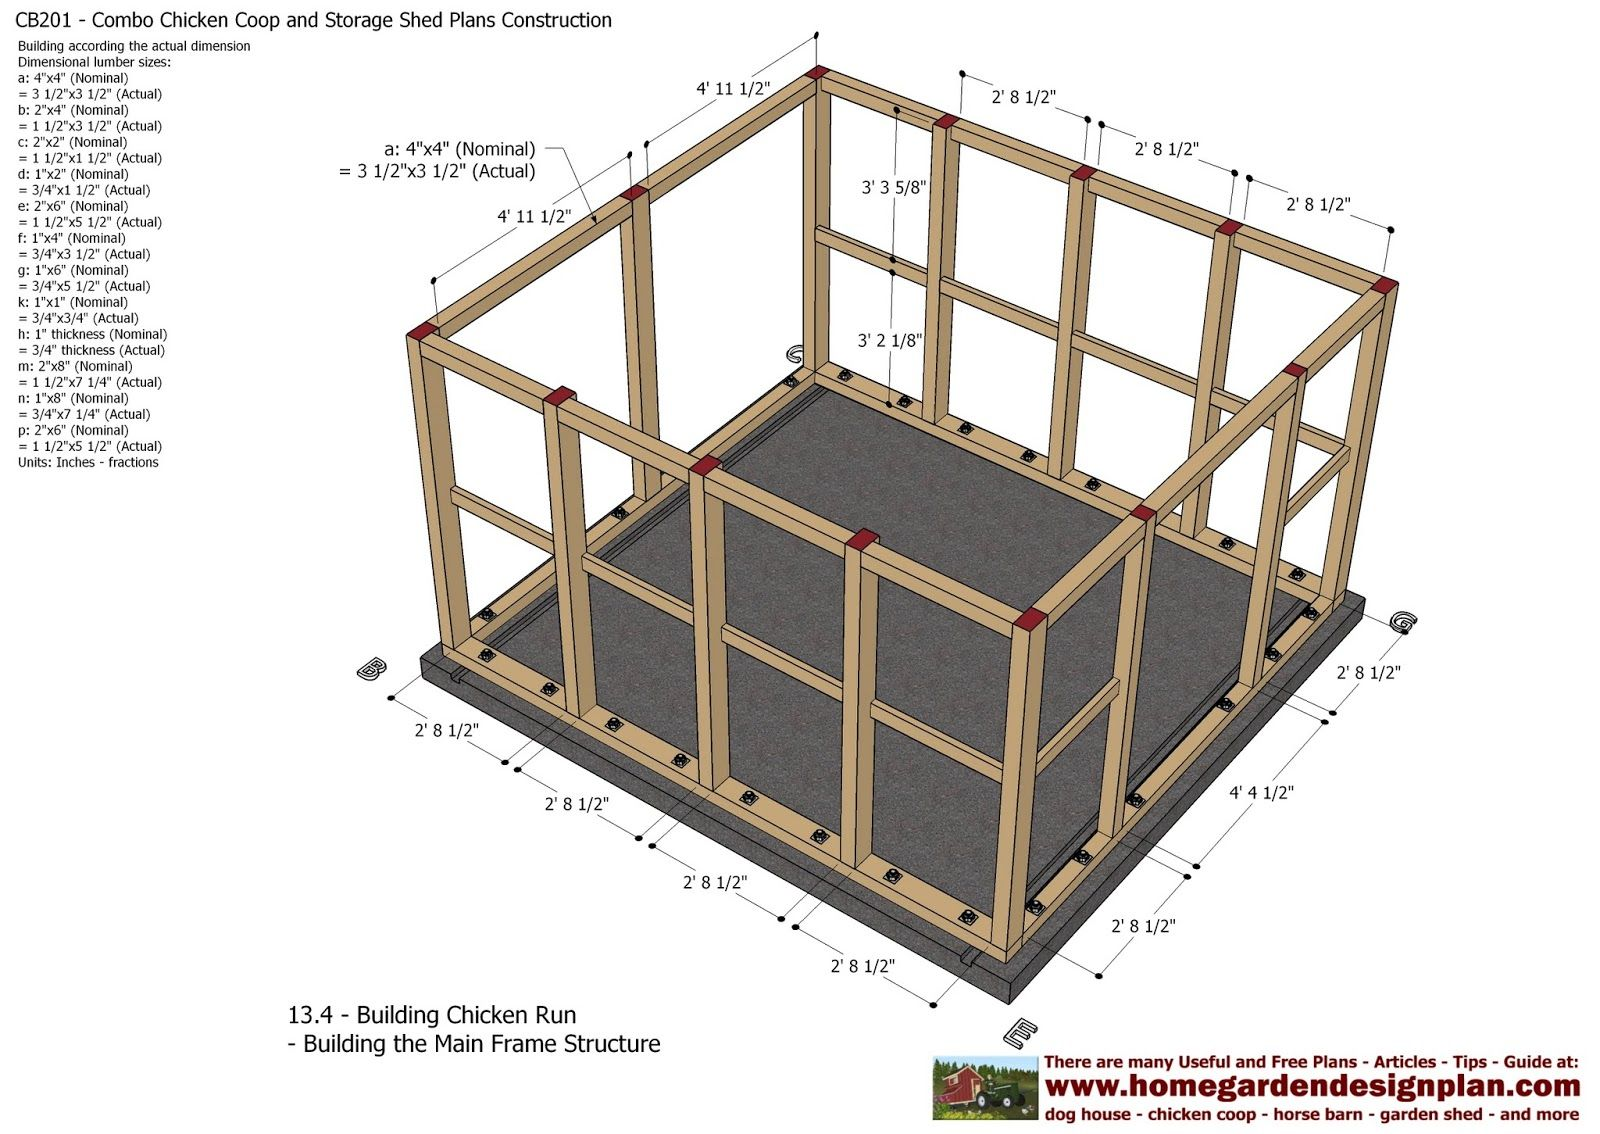 CB201 - Combo Plans - Chicken Coop Plans Construction ...